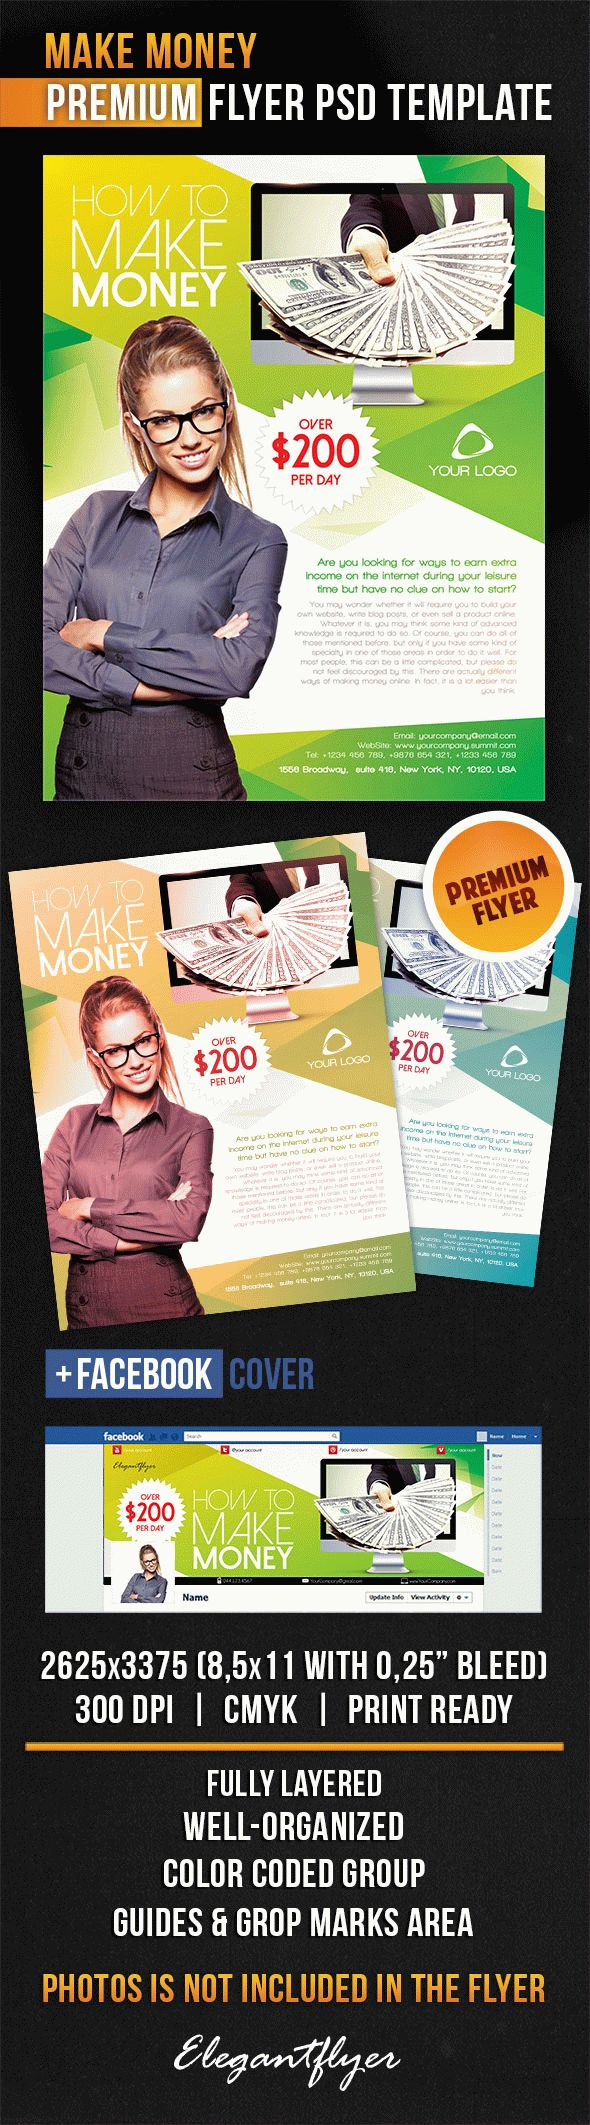 Make Money Invitation Flyer